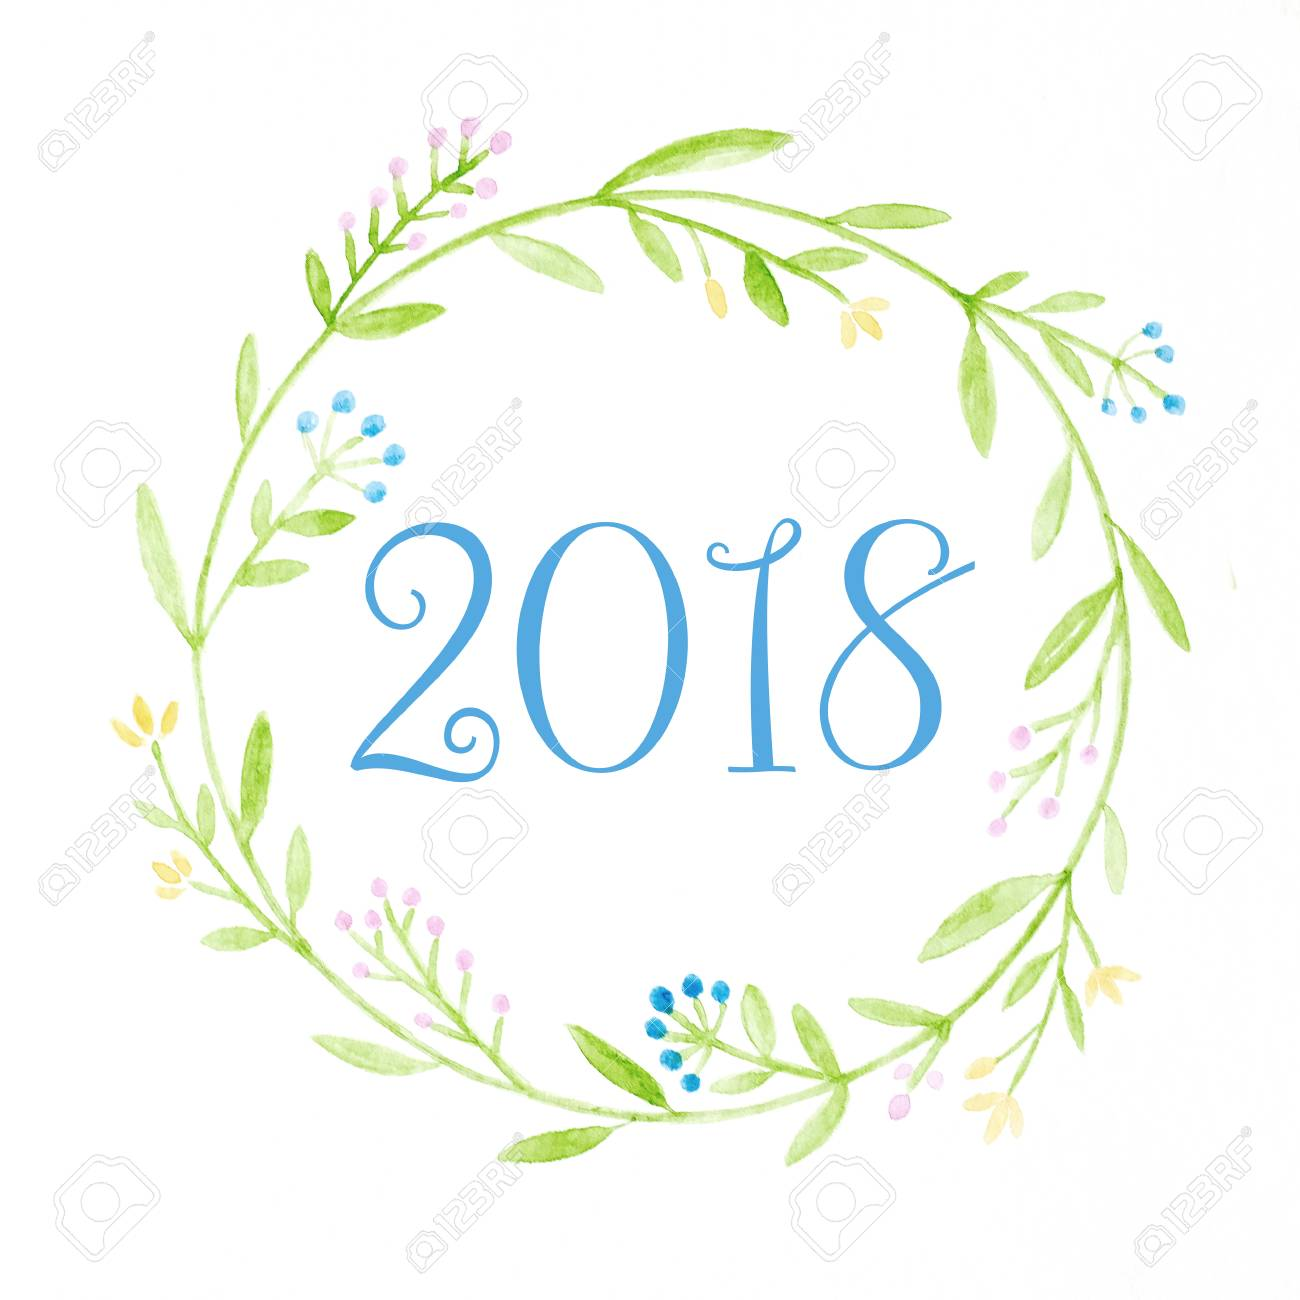 happy new year 2018 on watercolor hand painting flowers wreath over white background new year